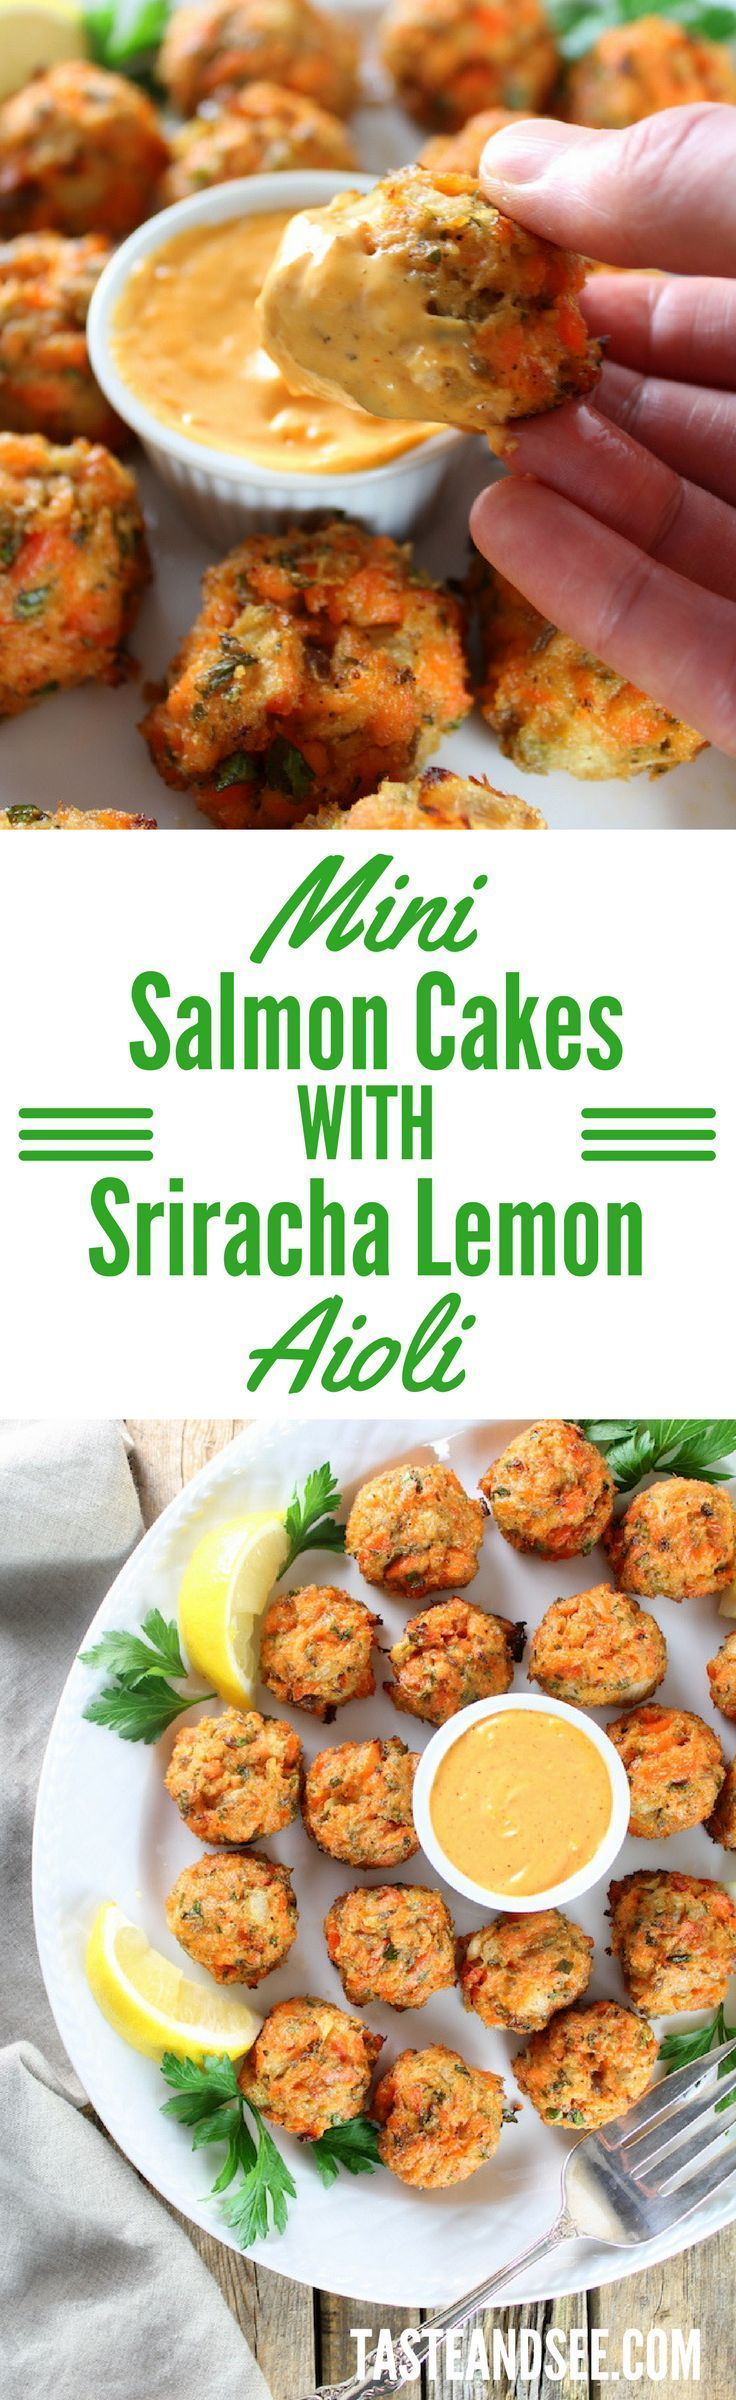 Mini Salmon Cakes with Sriracha Lemon Aioli - the perfect appetizer for holiday entertaining!